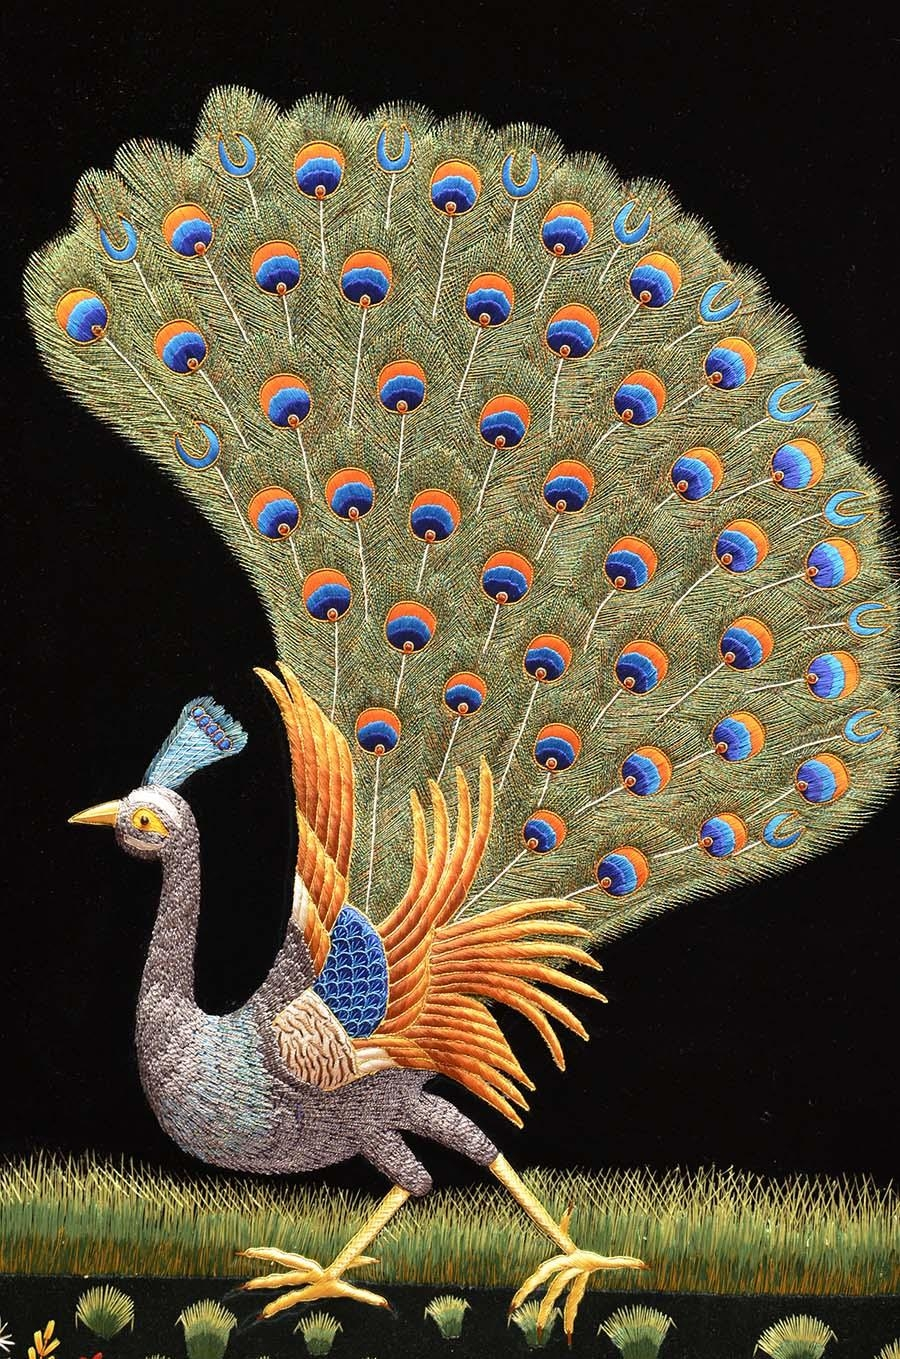 Peacock Wall Art Decorative Panel Jewel Art Tapestrykashmir Fine In Jeweled Peacock Wall Art (Image 16 of 20)